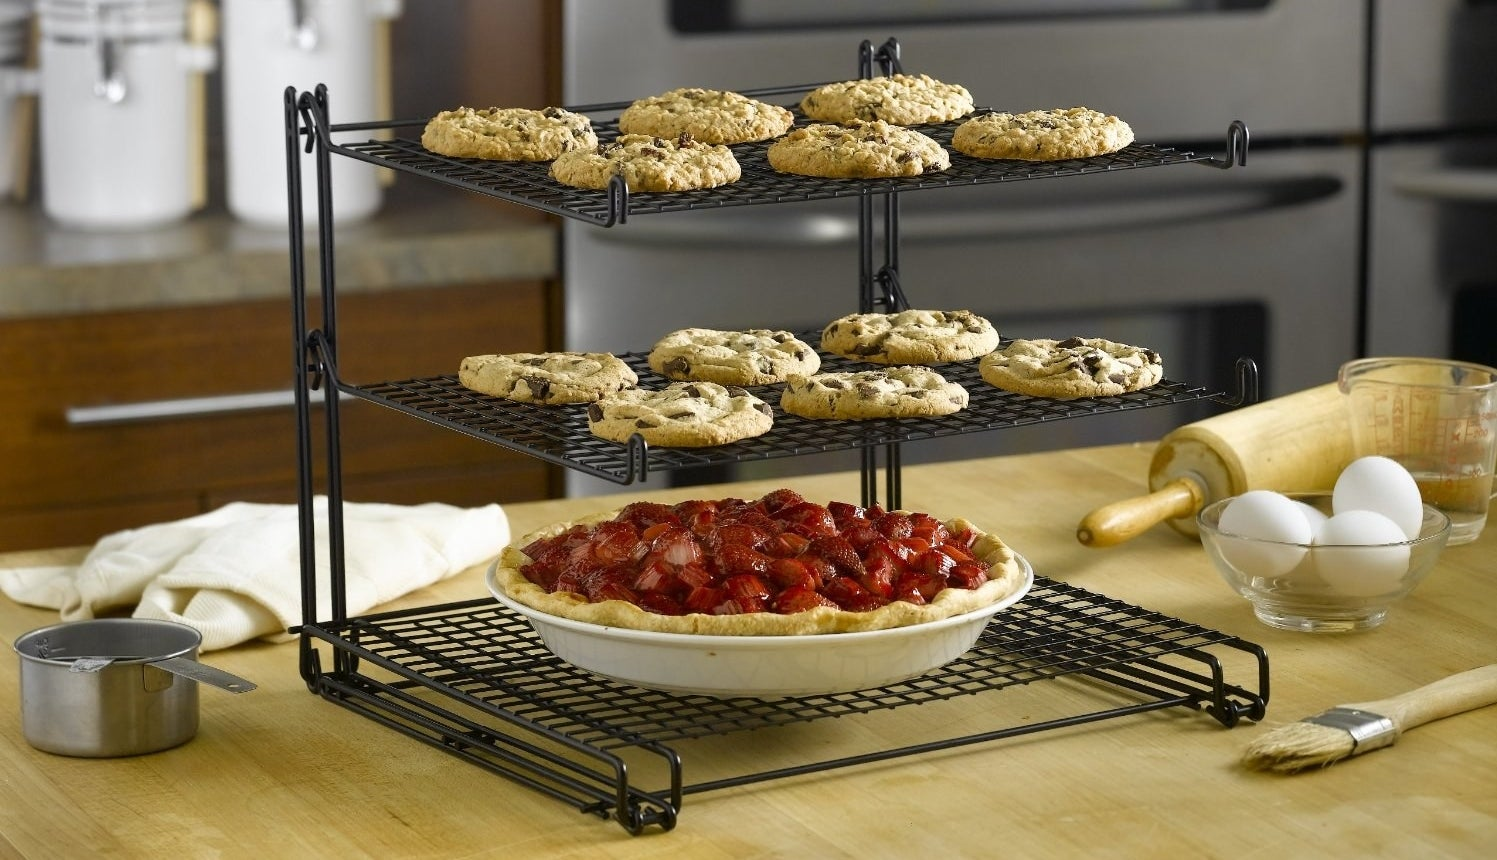 A three-tier cooling rack that'll ensure you can enjoy your bites without burning your mouth, because that wouldn't be fun.